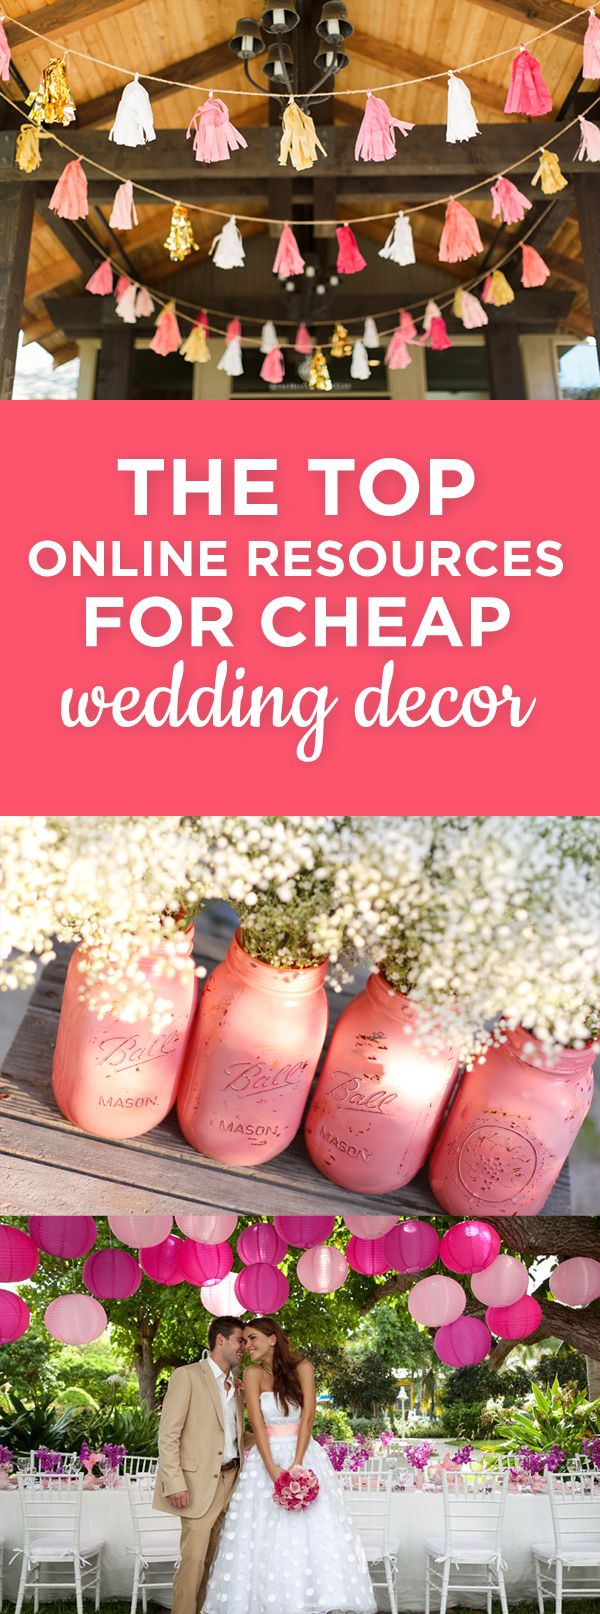 sources for cheap wedding decor